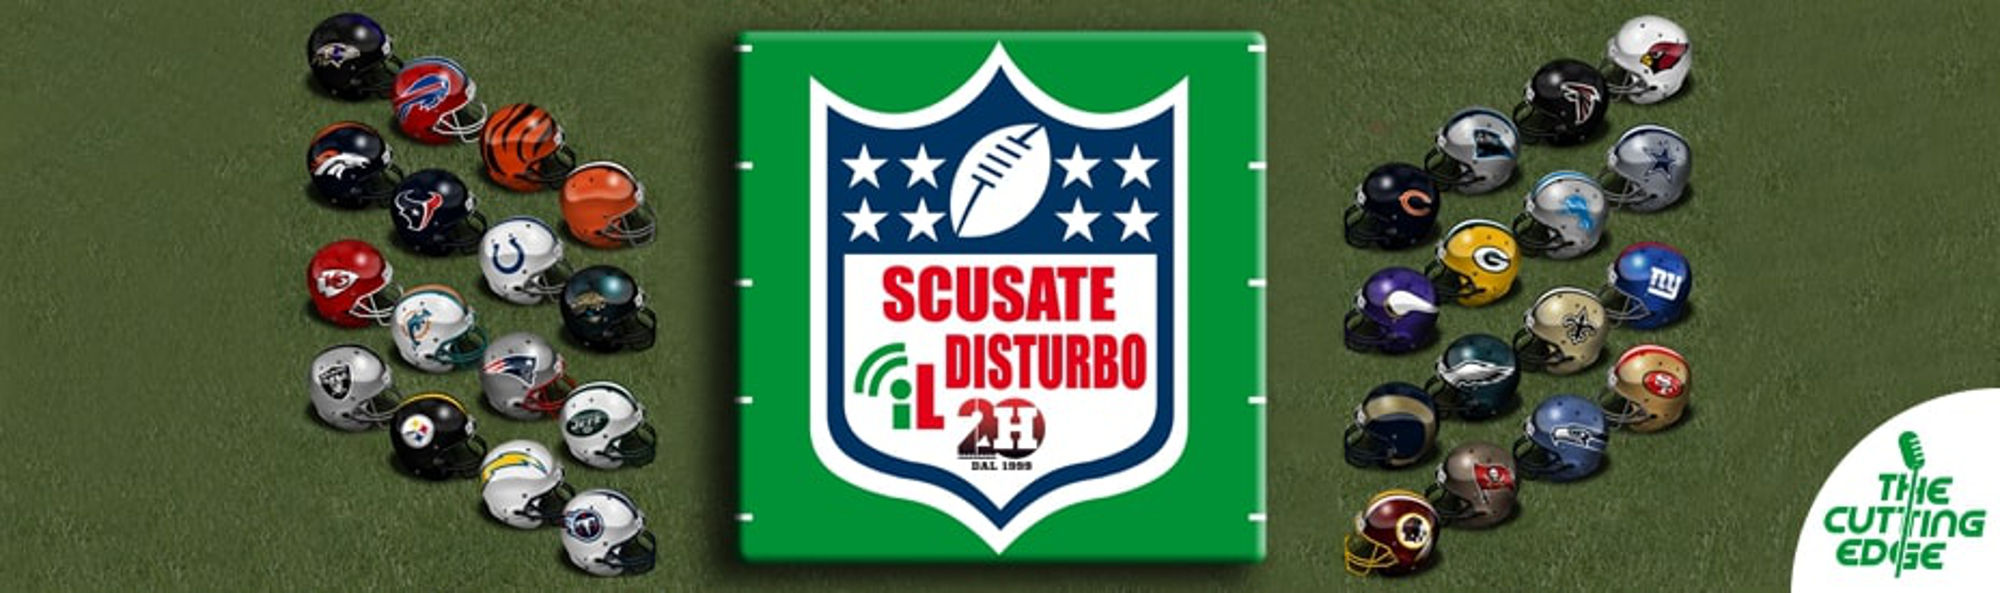 Scusate il Disturbo - Off Season E14 - Record da battere